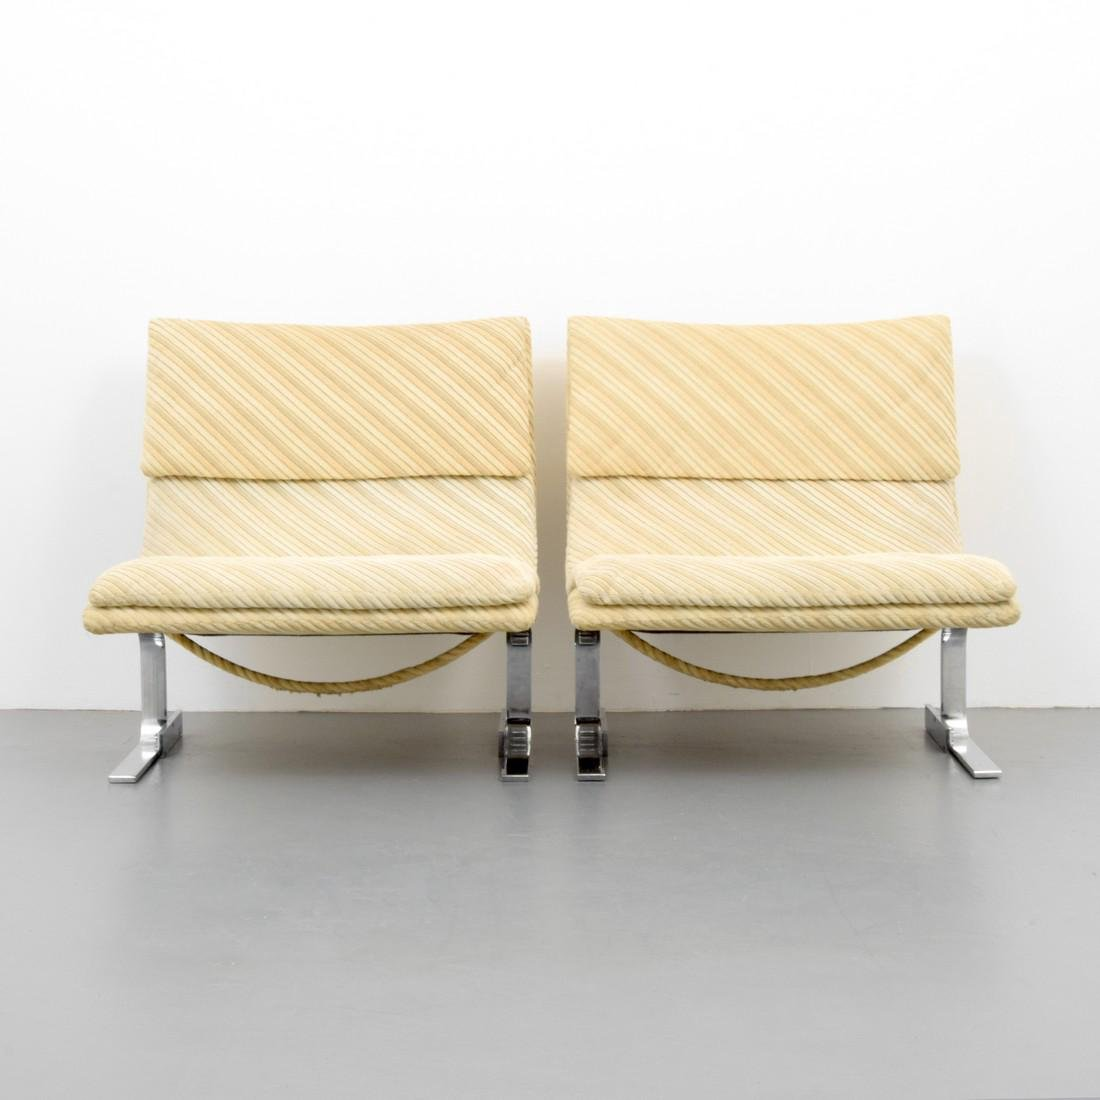 Pair of Giovanni Offredi WAVE / ONDA Lounge Chairs - 7